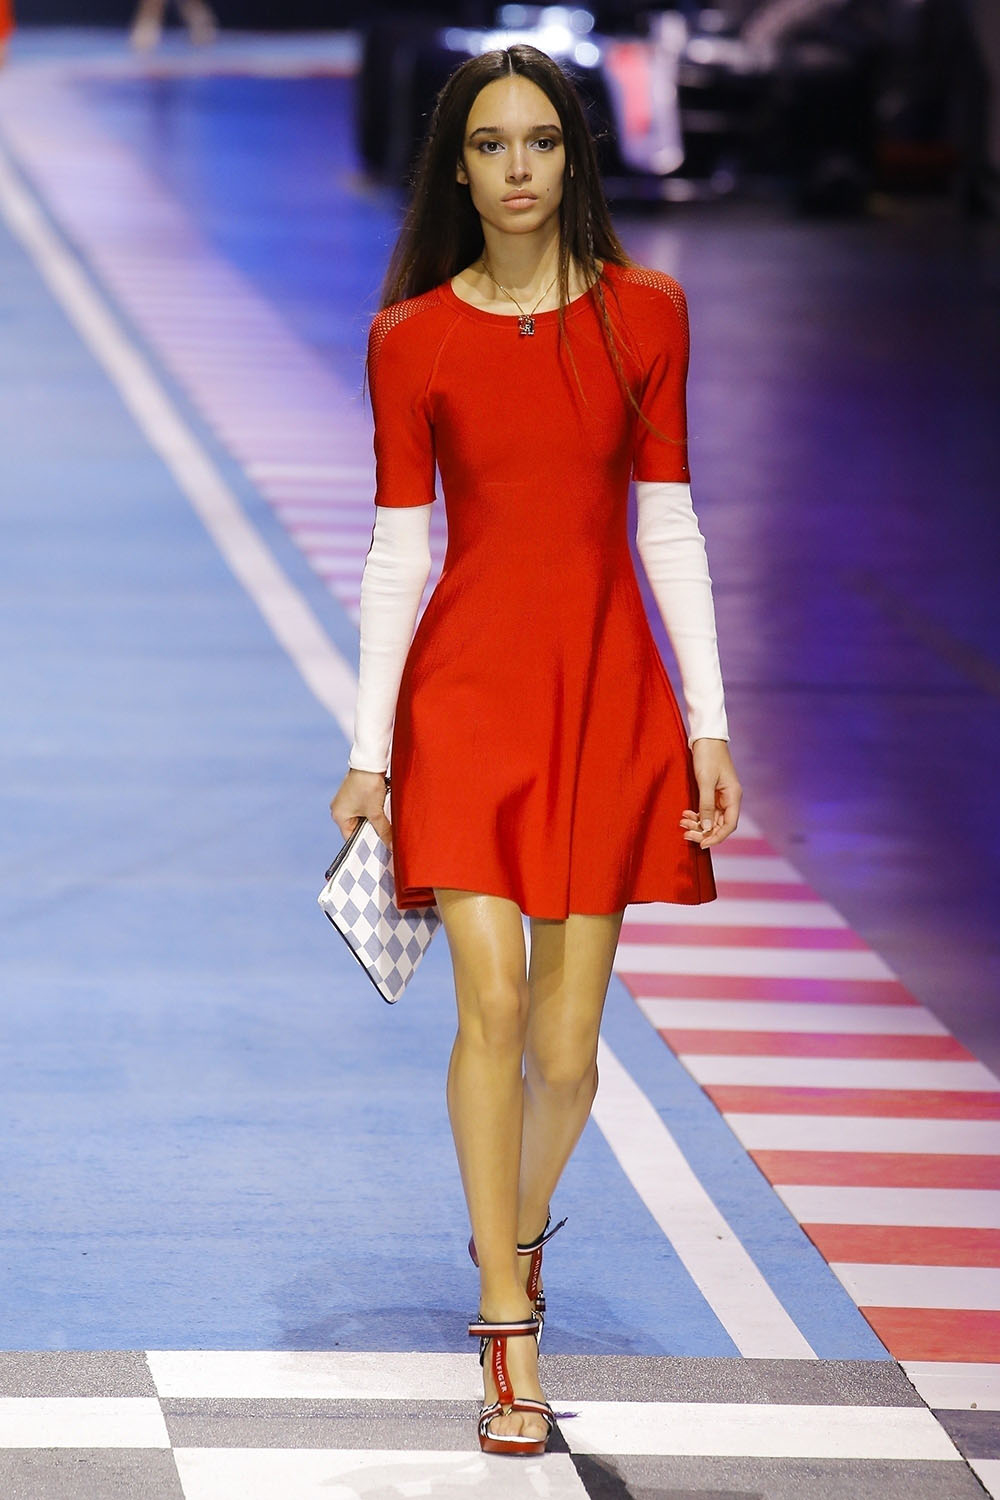 Nandy Nicodeme at The Tommy Hilfiger fashion show in Milan